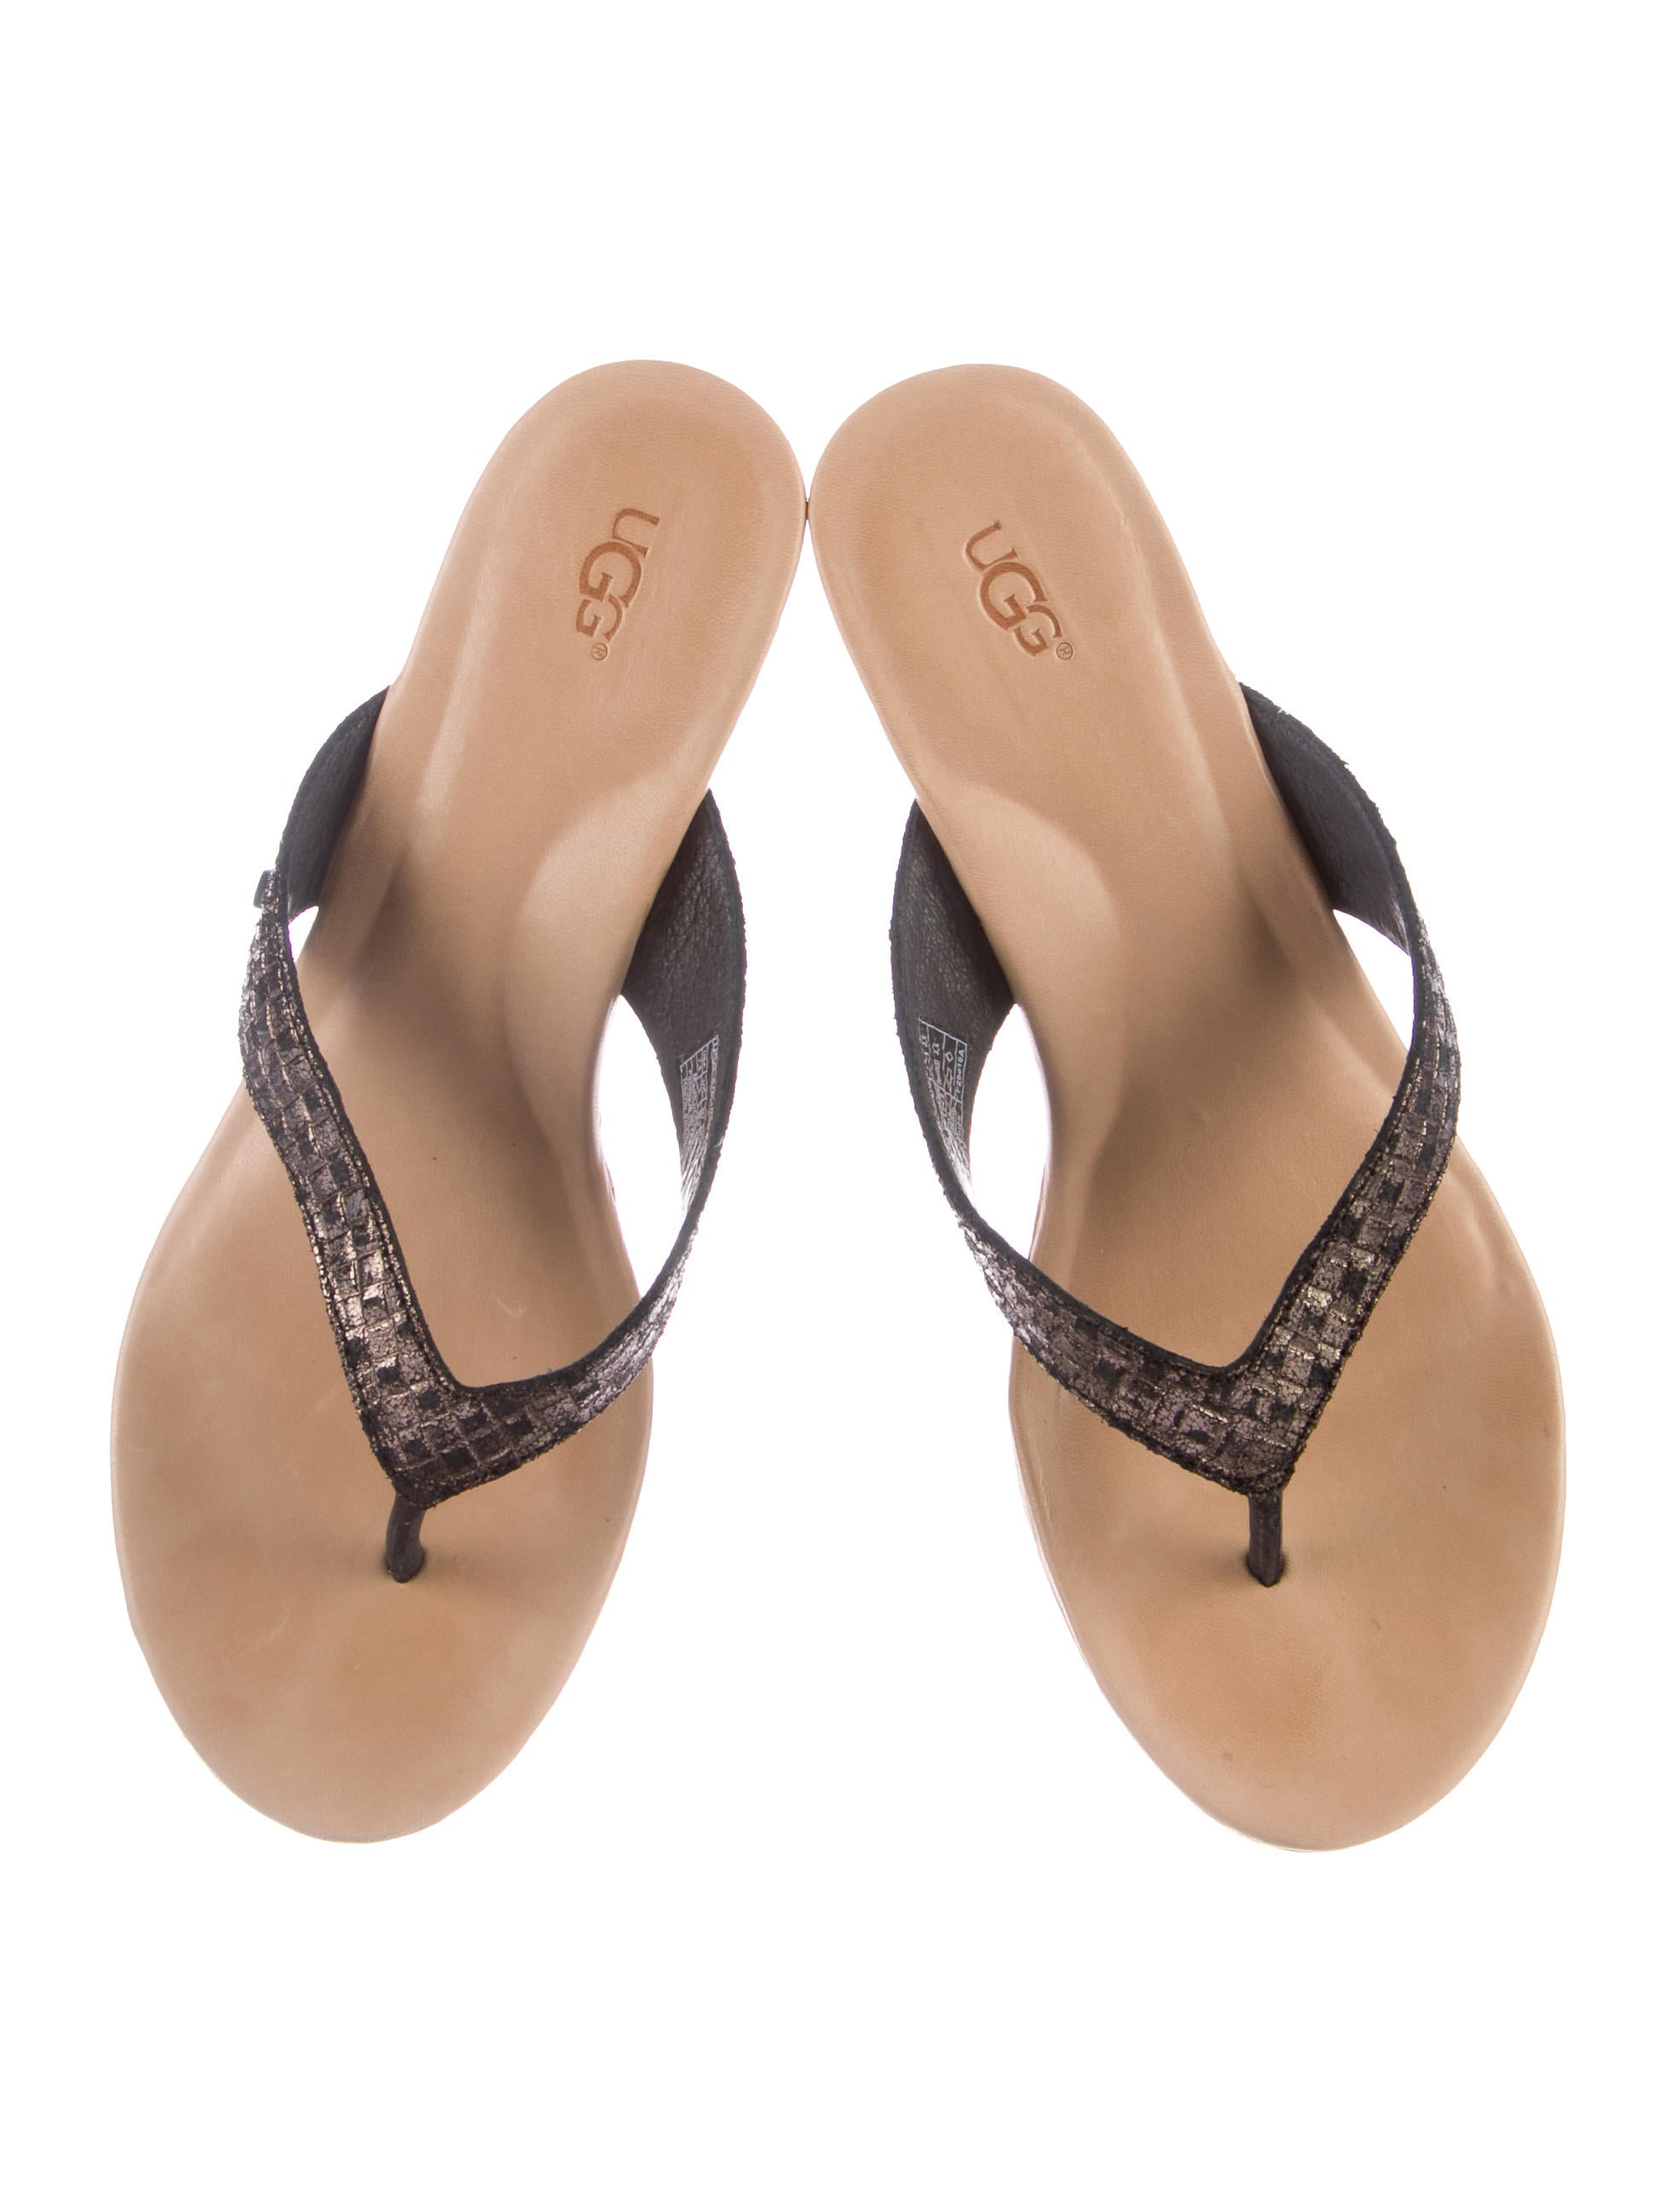 Sandals Buy sandals from Australia's biggest brands at the most affordable prices online London Rebel, Naughty Monkey and Spoiled are just some of the wonderful names to appear in Famous Footwear's fantastic selection of sandals online.